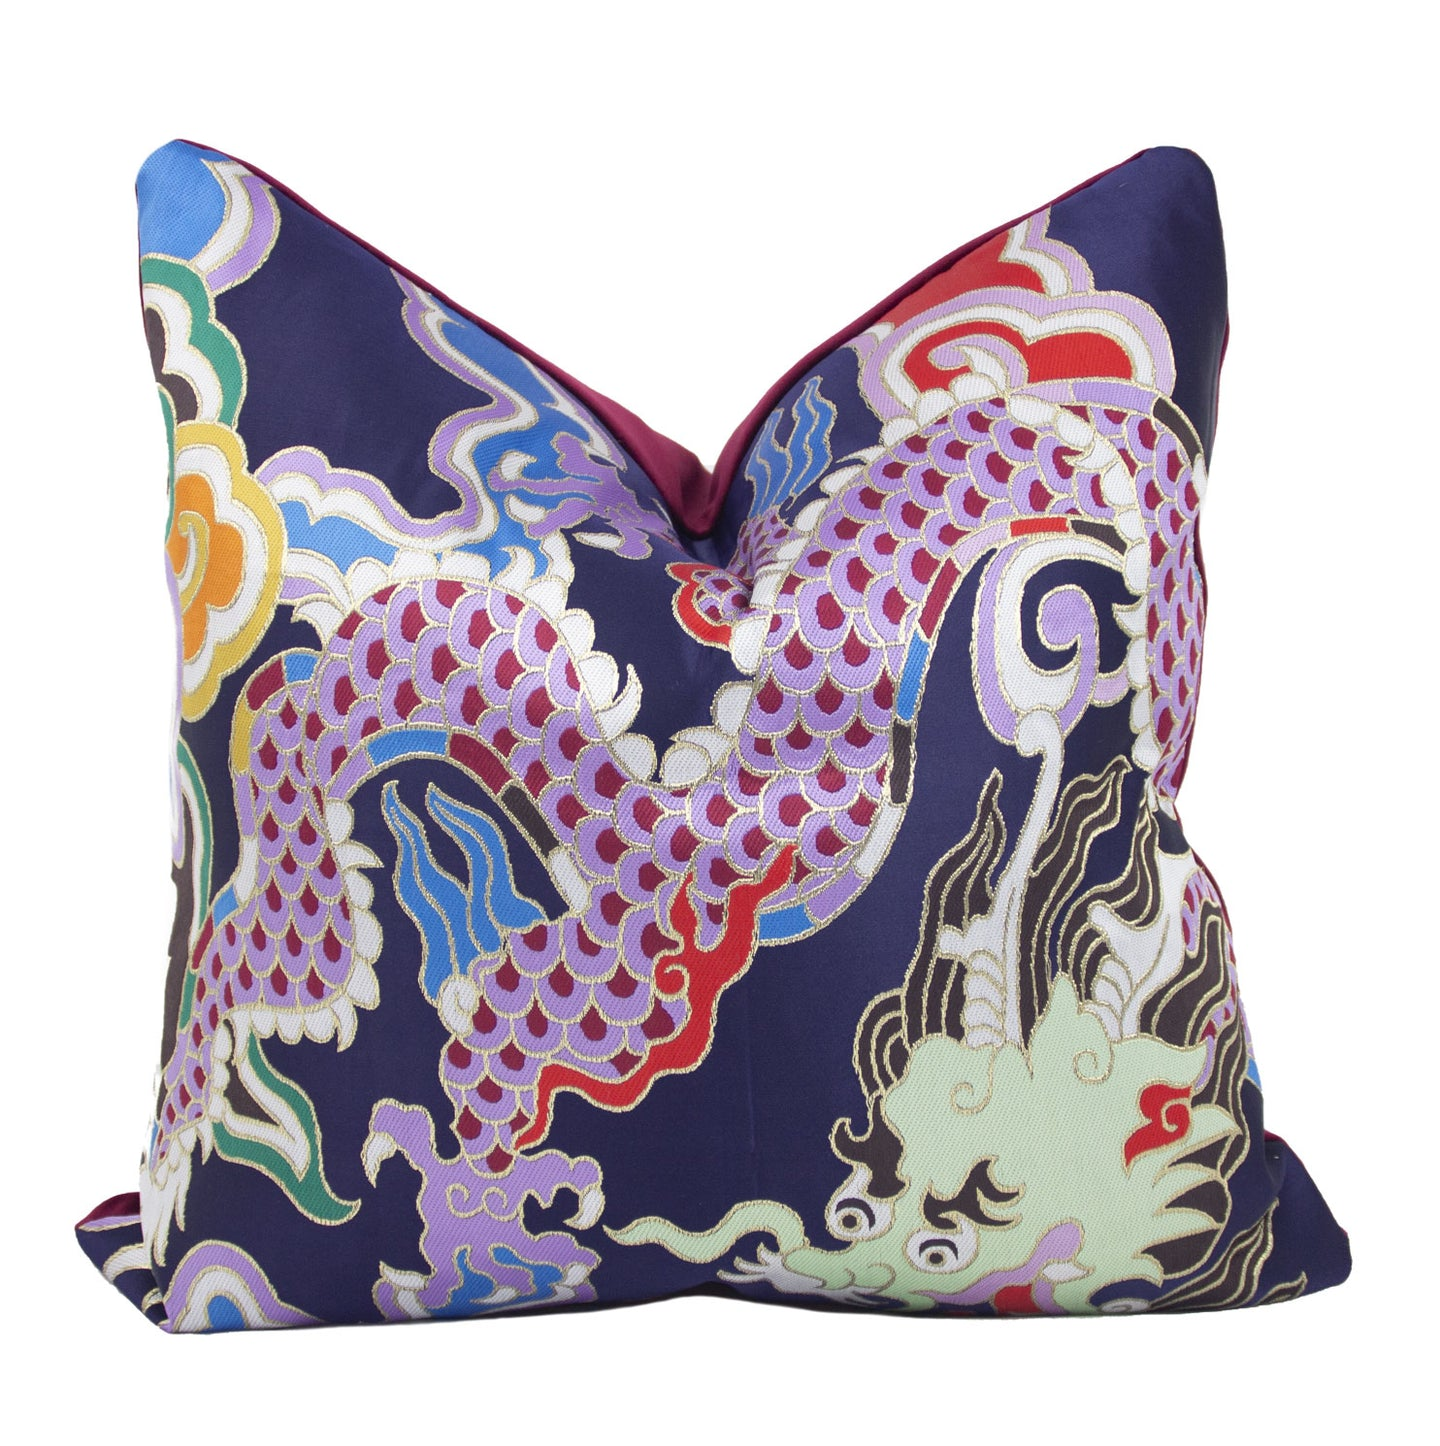 22x22 - Dragon Obsessed Pillow Cover